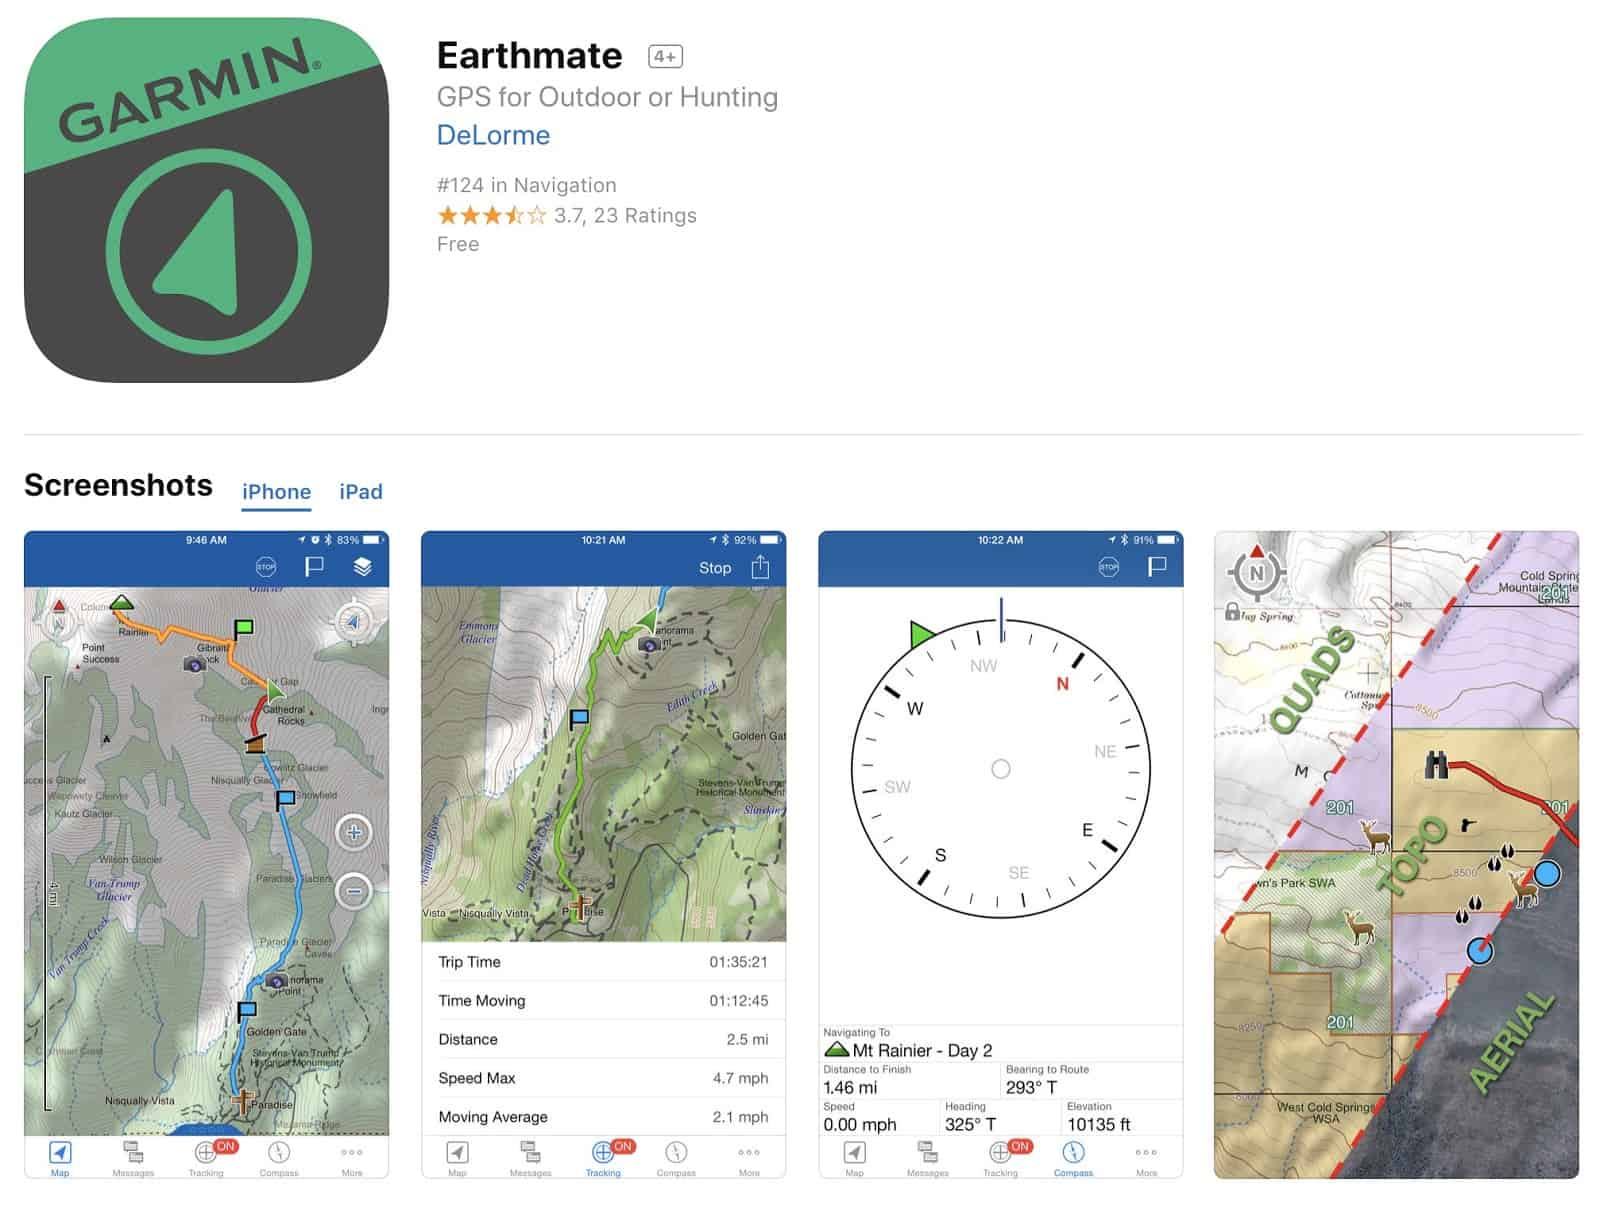 garmin earthmate app preview 1